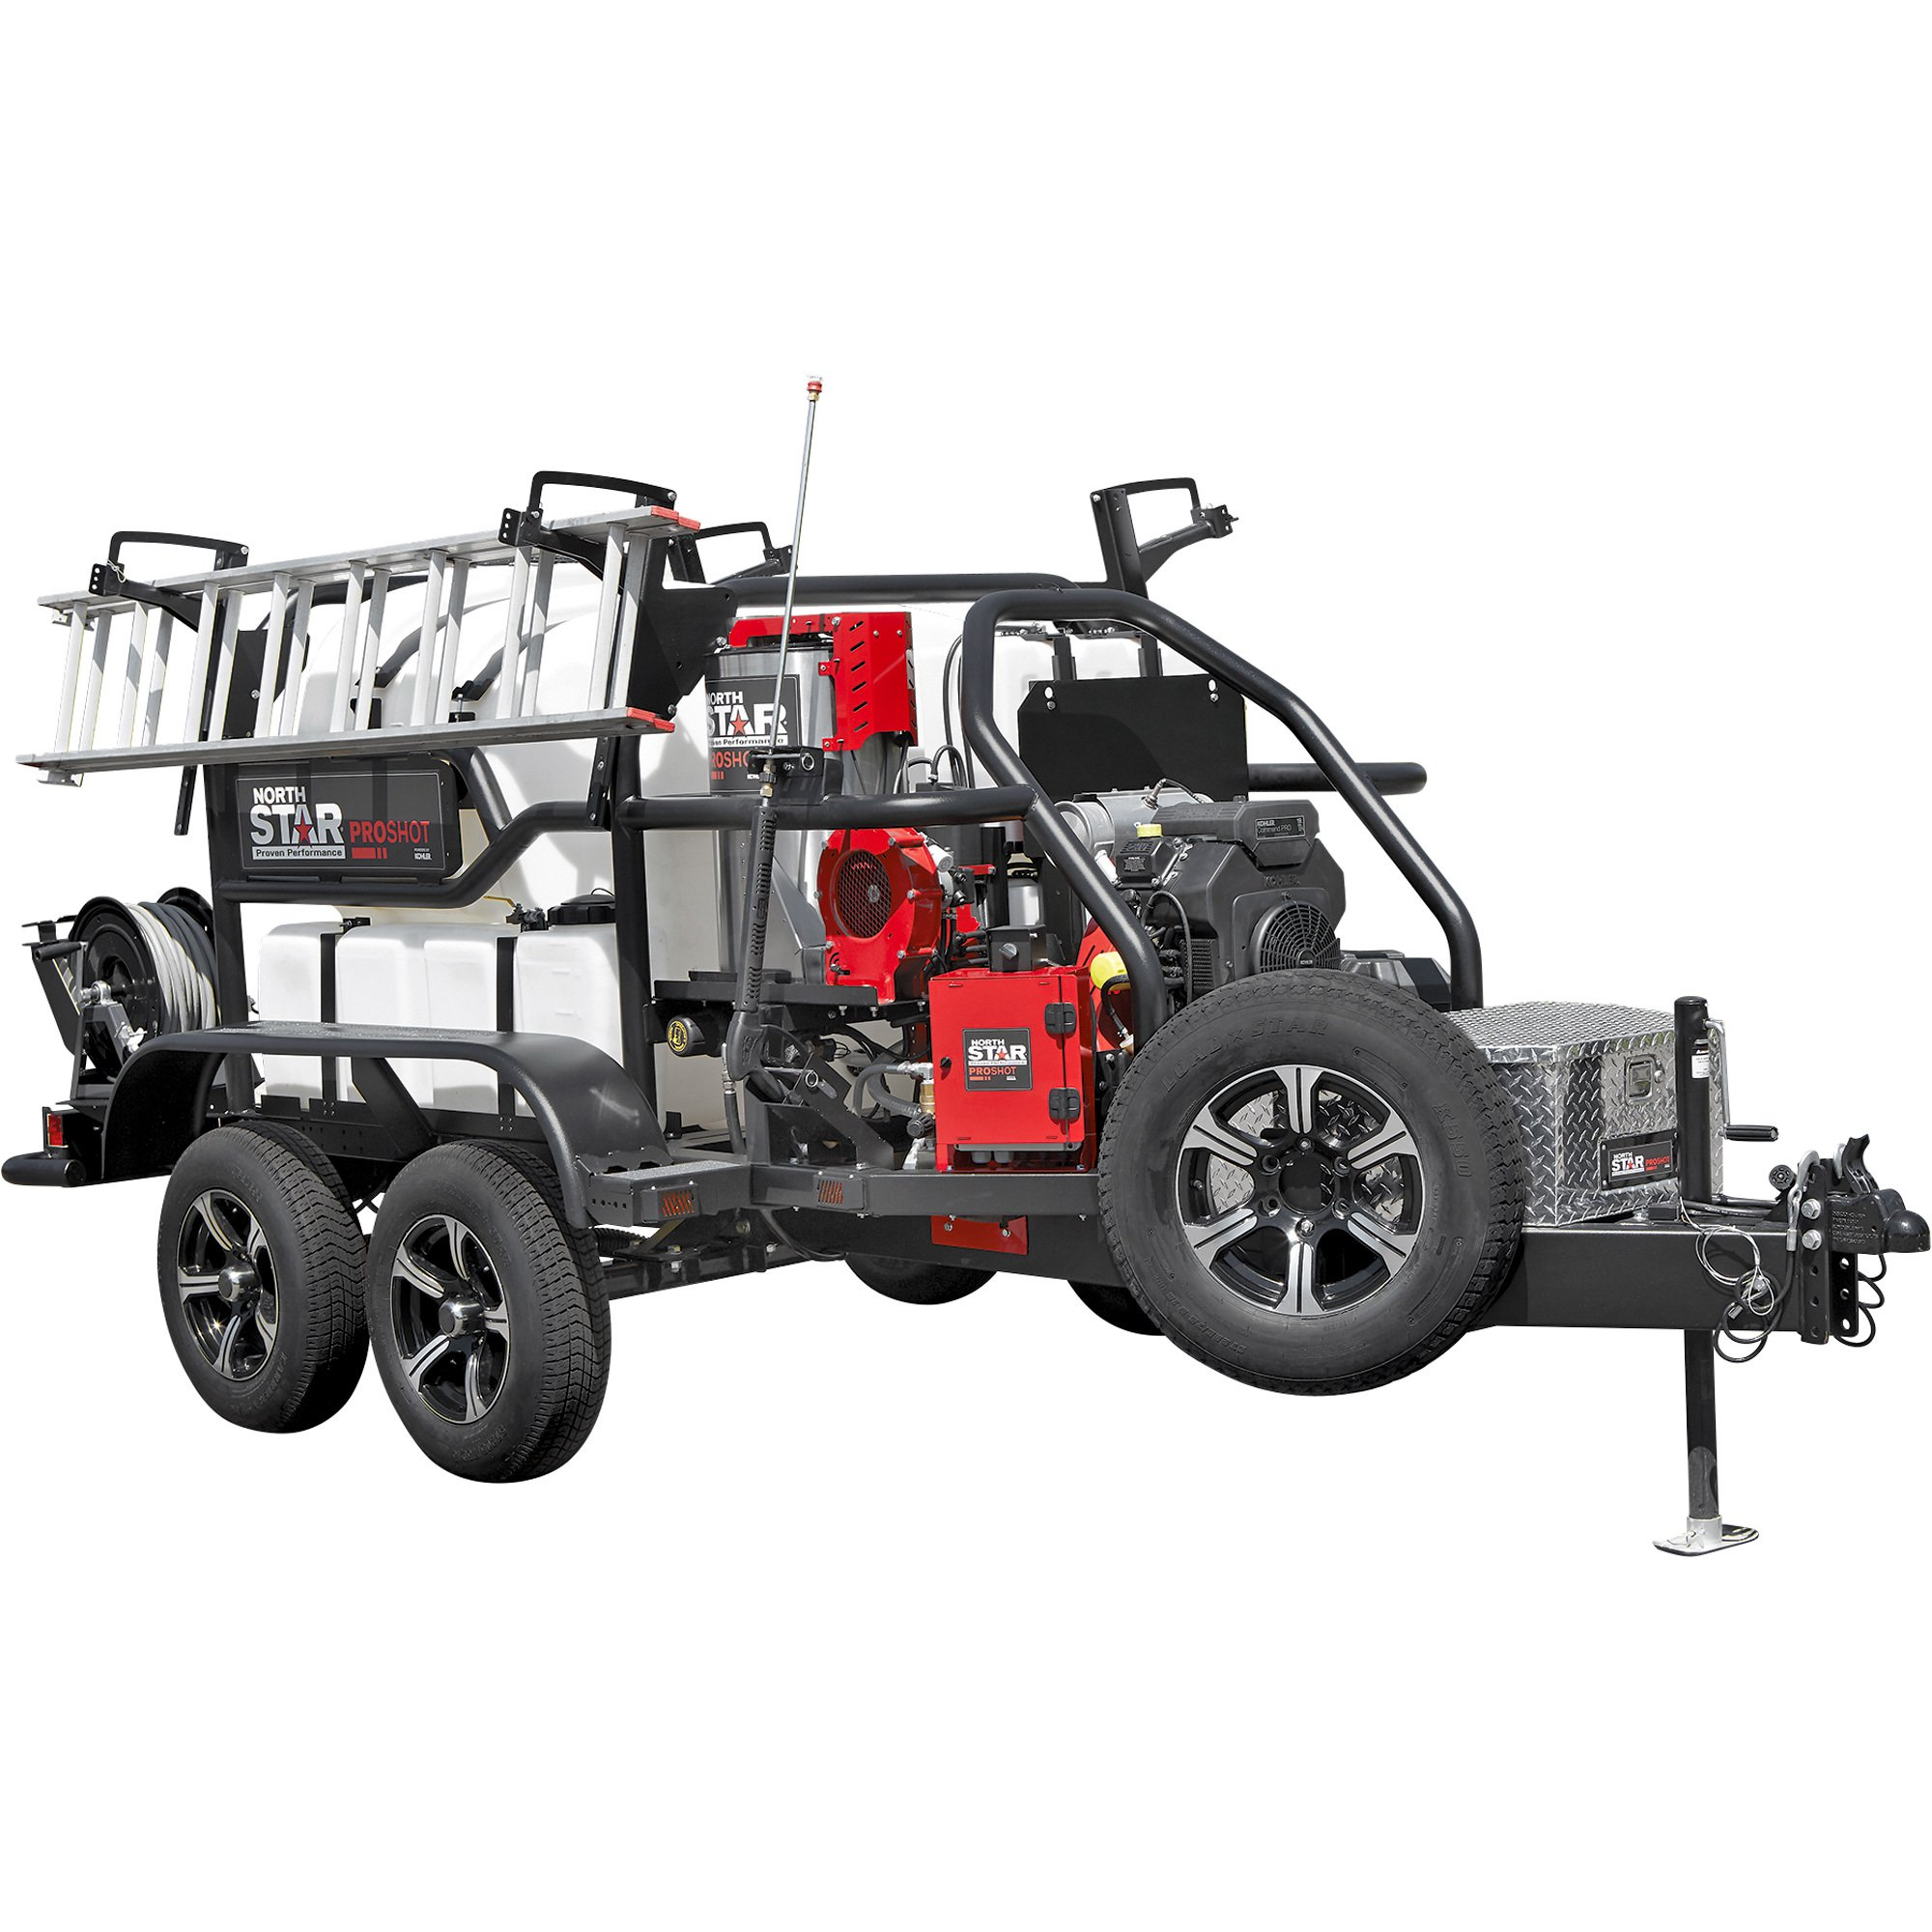 NorthStar 157563 ProShot Hot Water Commercial Pressure Washer Trailer - 4000 PSI 5.5 GPM Kohler Engine — Freight included